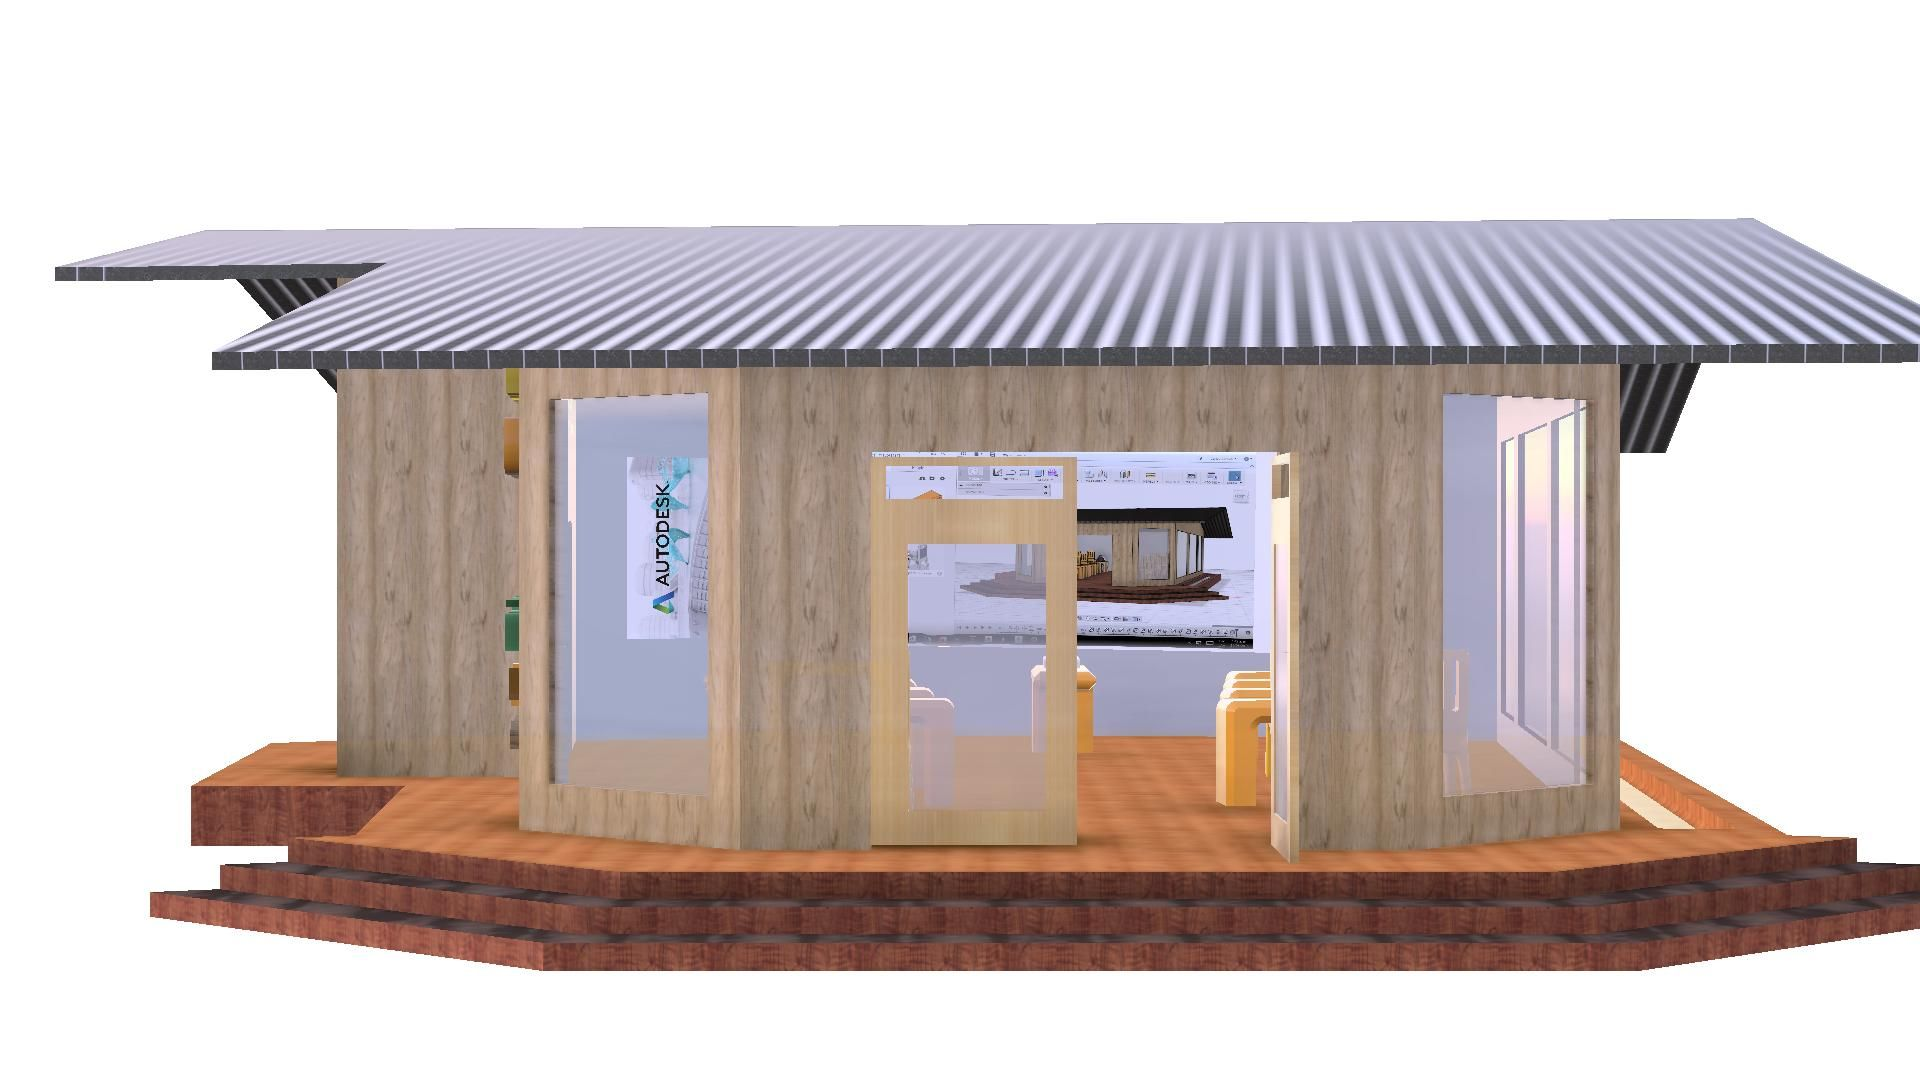 Autocad-fusion-360-as-3d-modelling-vista-frontal-3500-3500